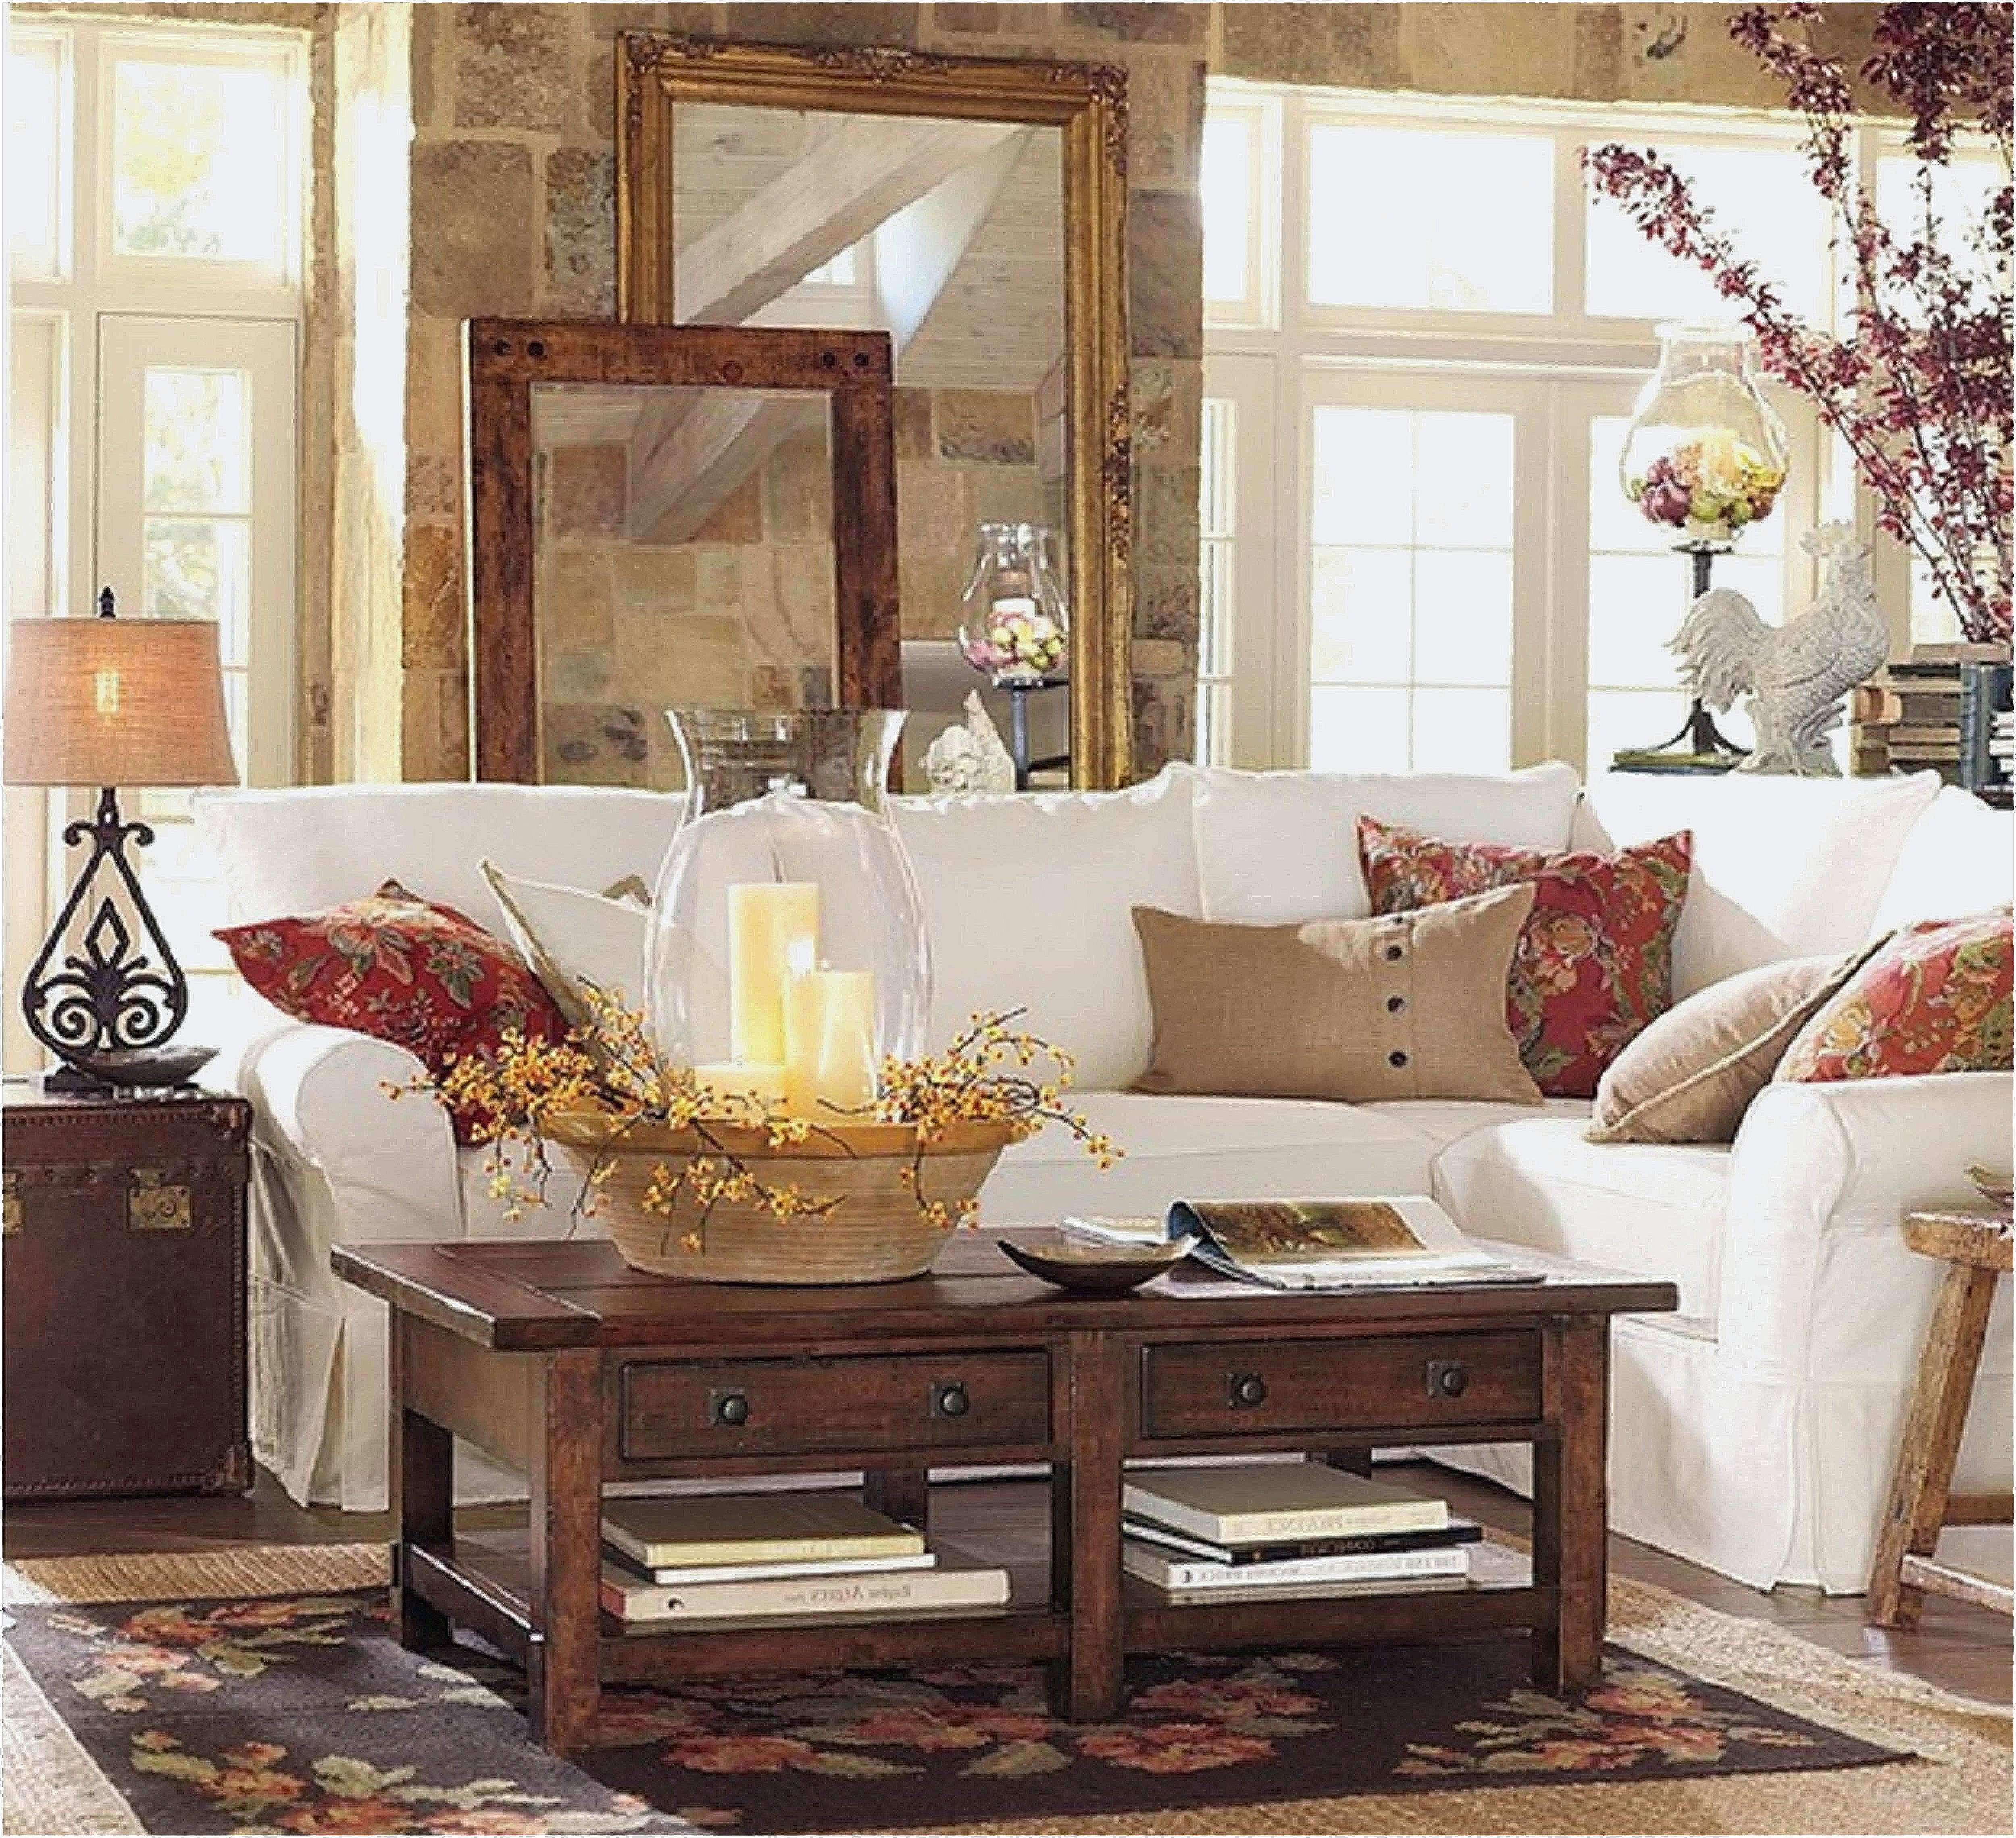 new lake house decorating ideas bedroom with images on home interior design ideas id=49296